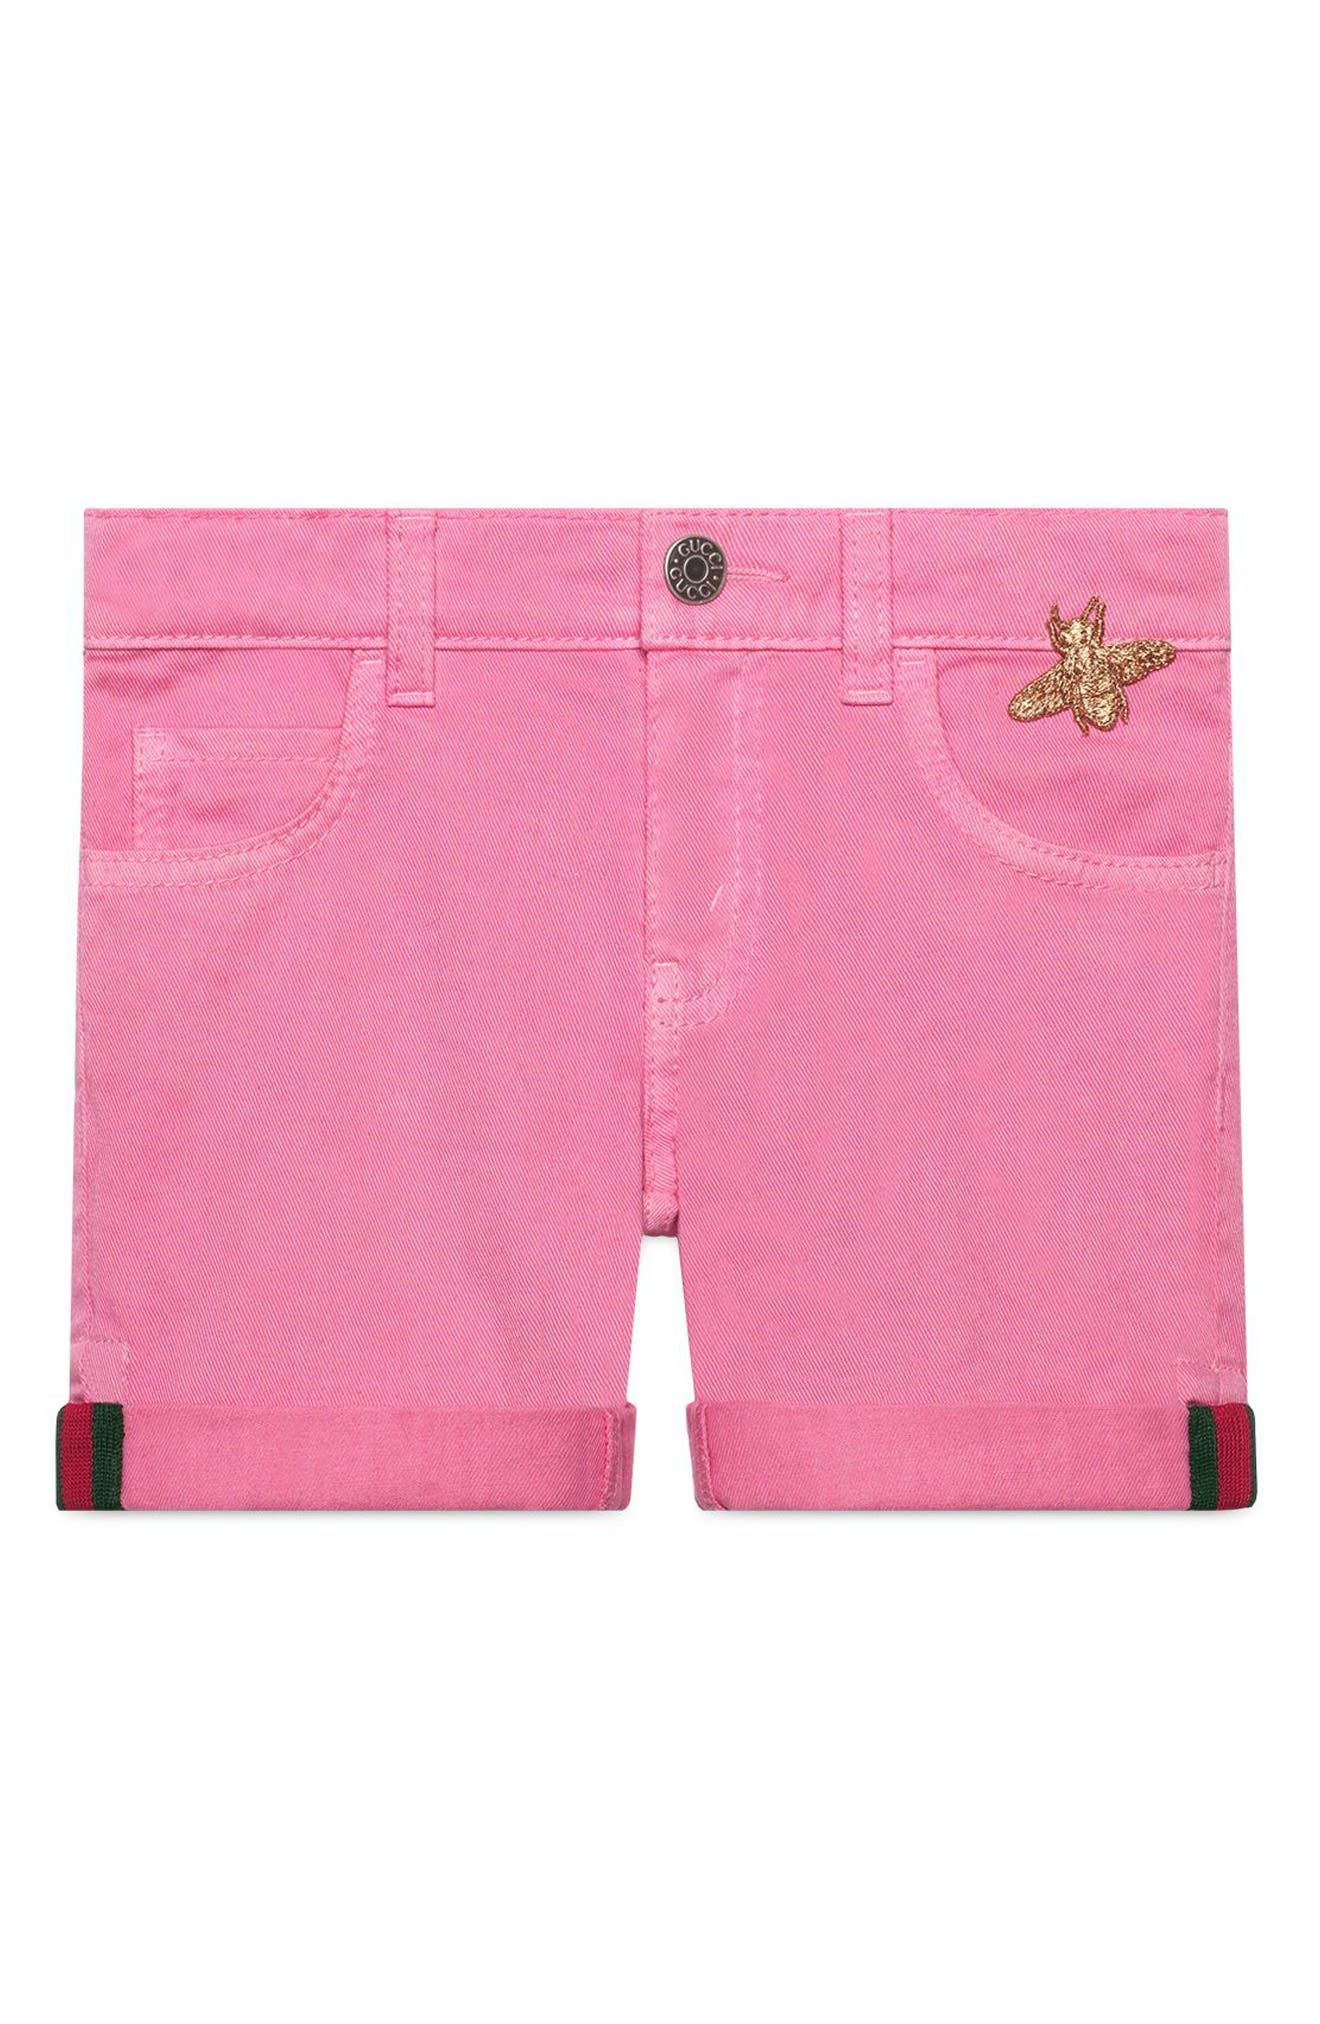 Pink Denim Cuffed Shorts,                             Main thumbnail 1, color,                             Copper/ Rose